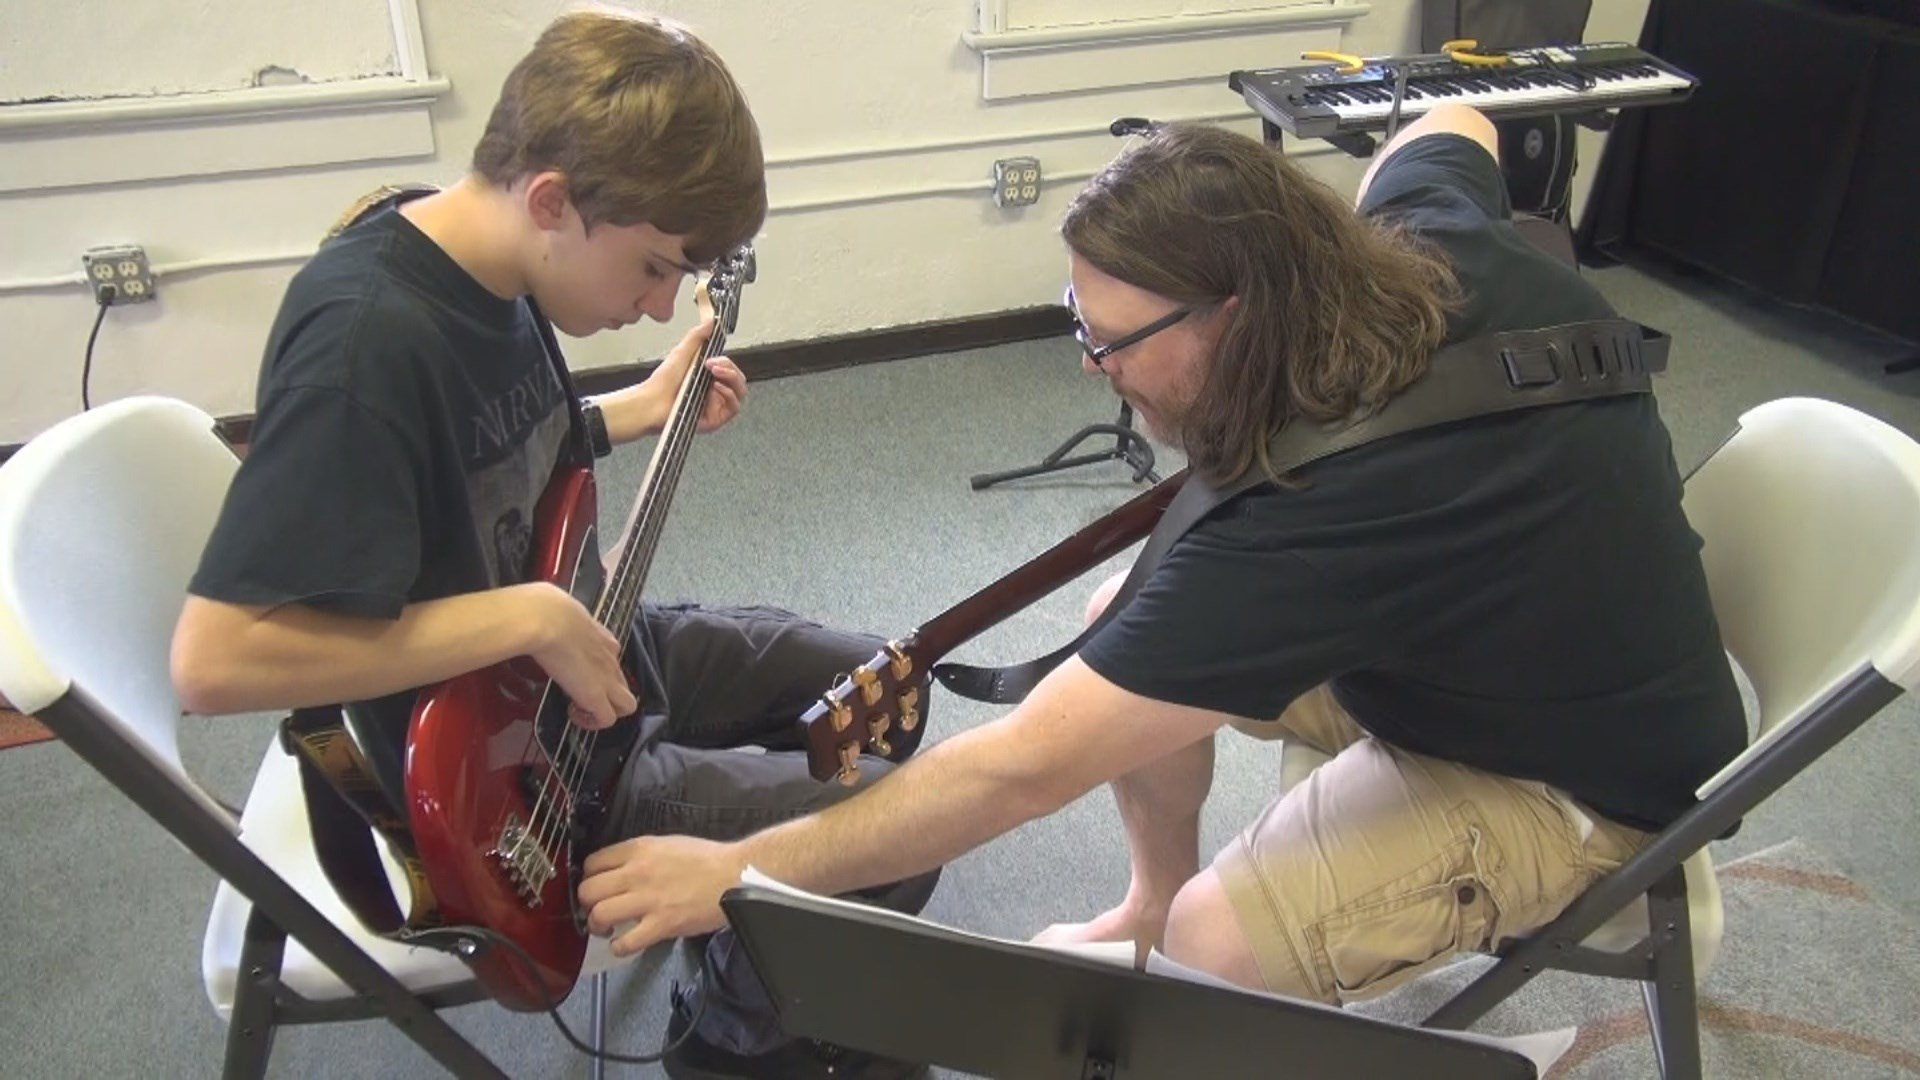 An instructor at the PopShop teaches a bassist in a one-on-one lesson.